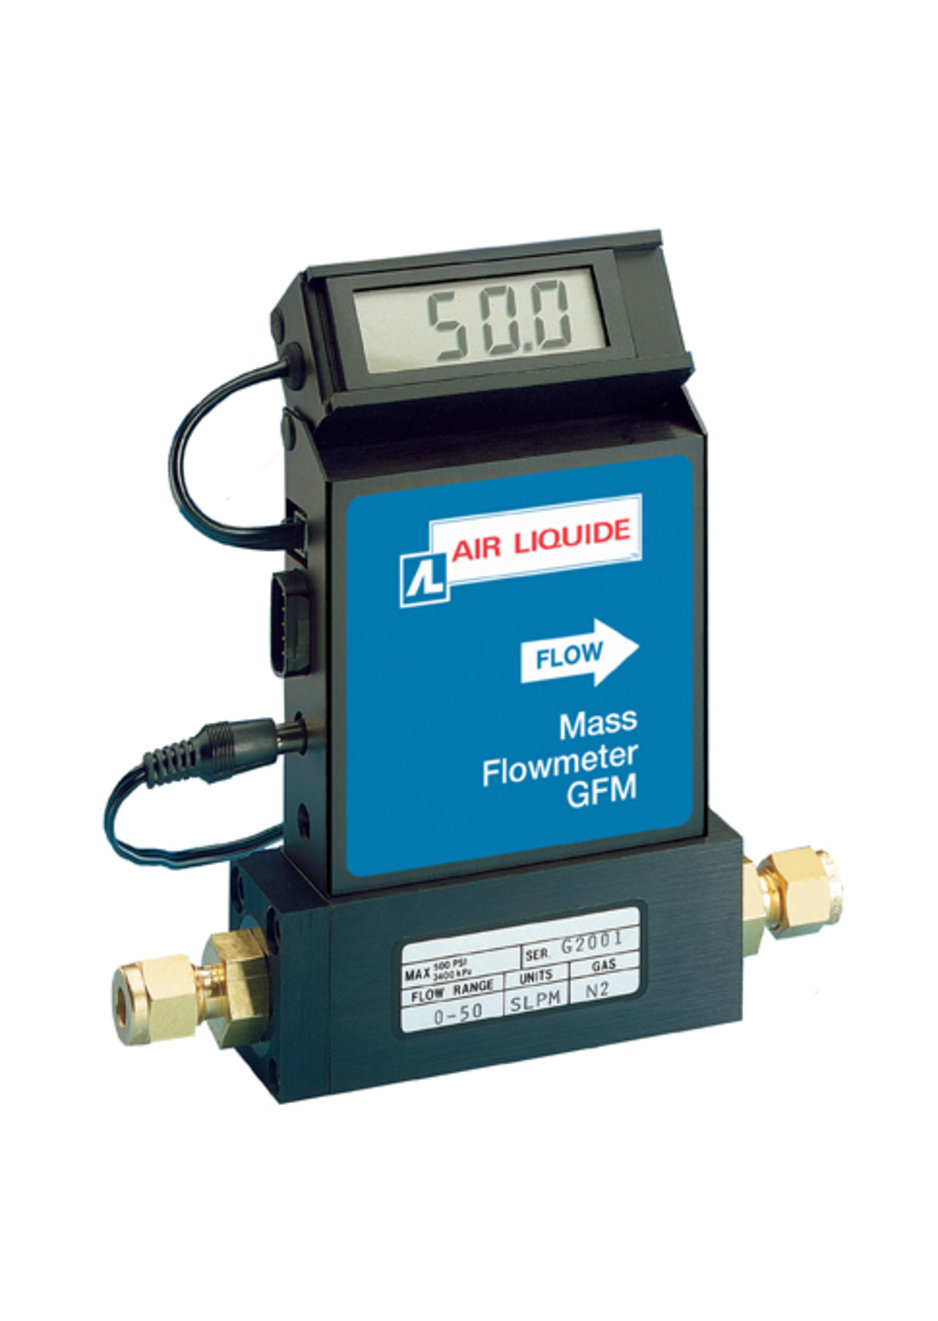 Model GFM Thermal Mass Flow Meters are compact, self-contained flowmeters designed to read flow rates of gases.